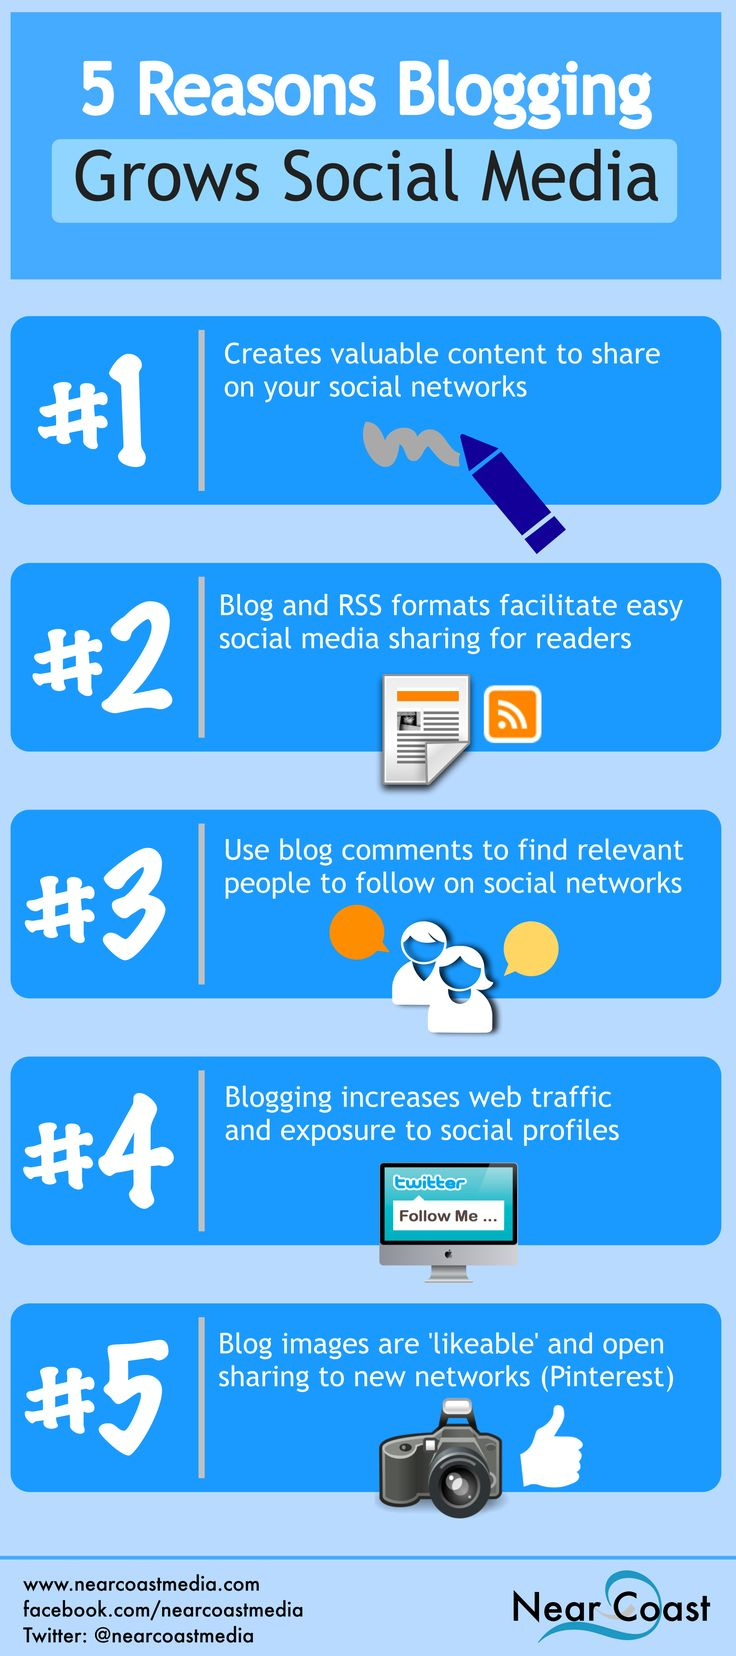 5 reasons blogging grows social media #infographic by Near Coast